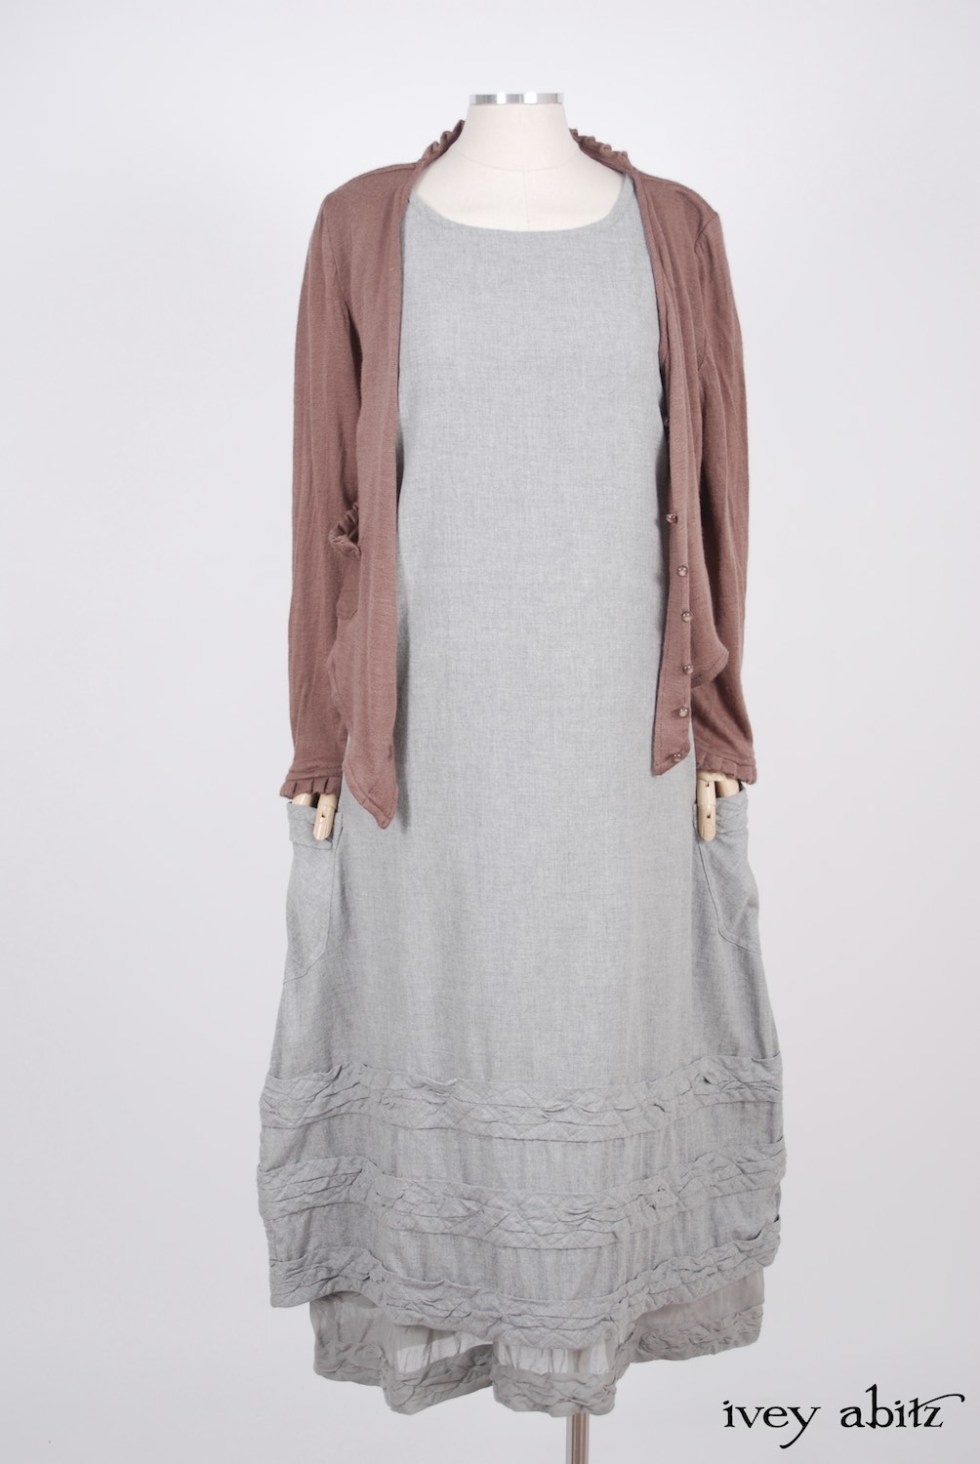 Ivey Abitz - Canterbury Cardigan in Blushed Cashmere Knit  - Tollie Frock in Sparrow Grey Softest Cotton Twill, High Water Length  - Tollie Frock in Sparrow Grey Wispy Silk Voile, Low Water Length